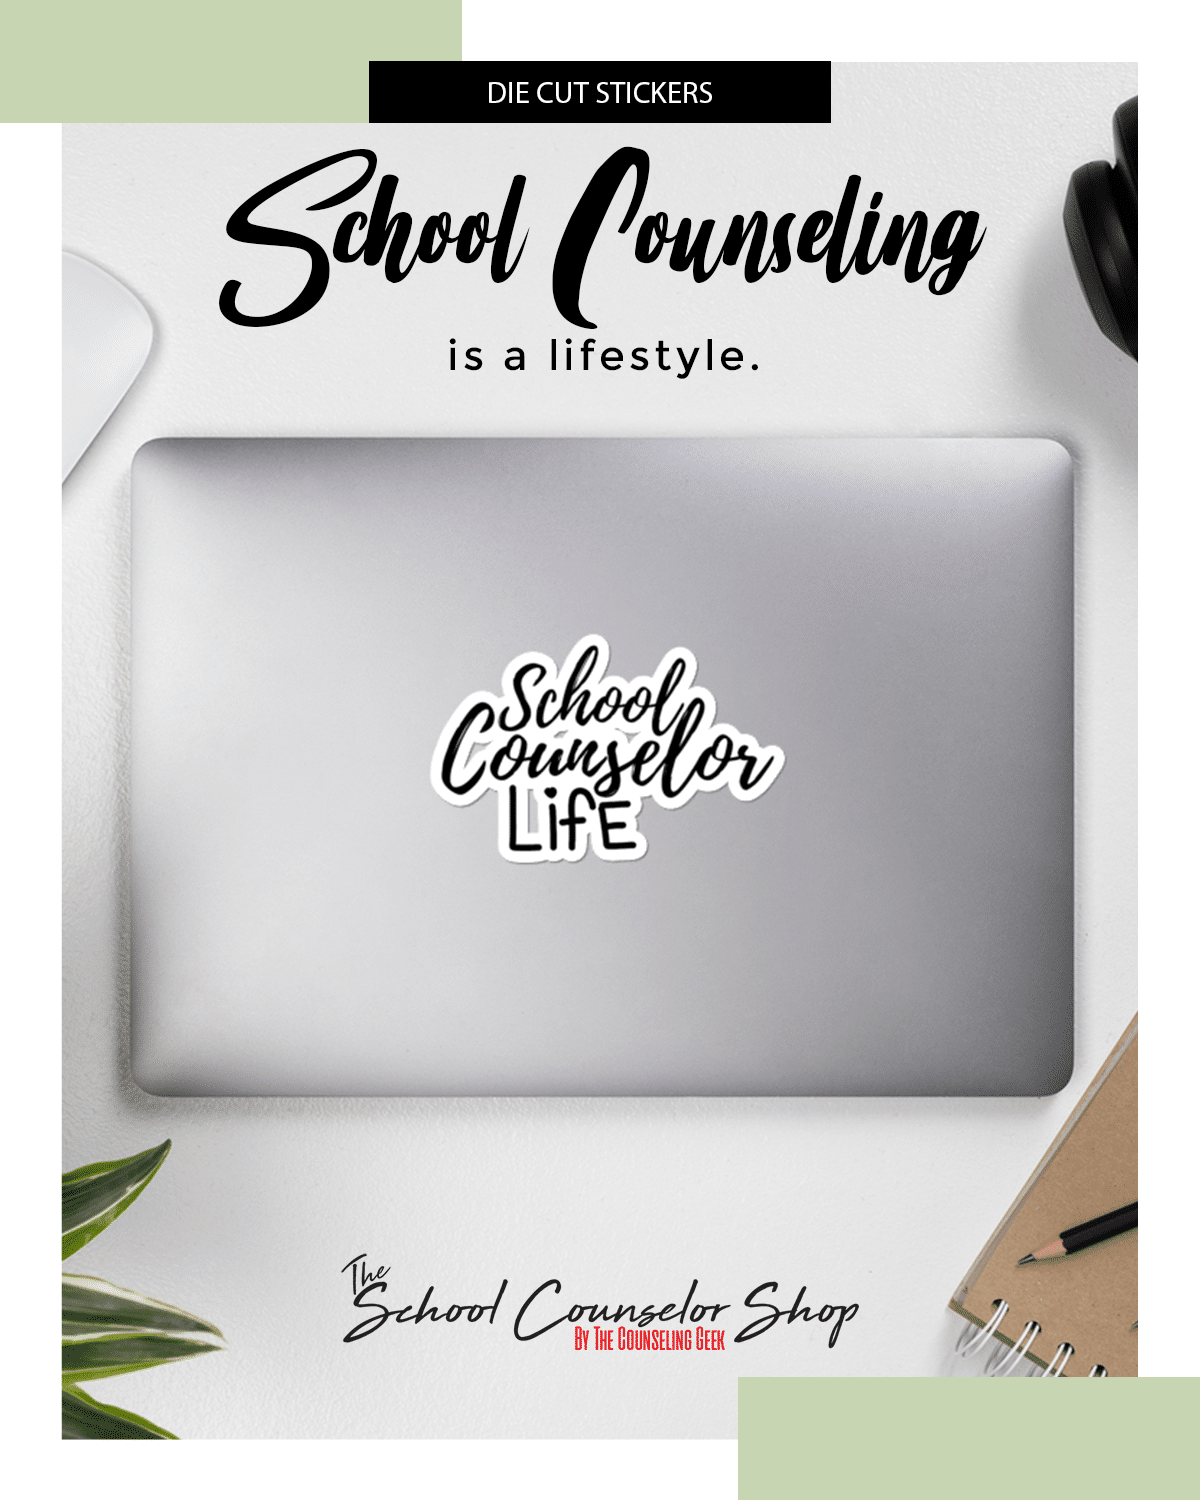 School Counselor | Counselor Sticker | Laptop Sticker| School Counselor Life Bubble-free stickers